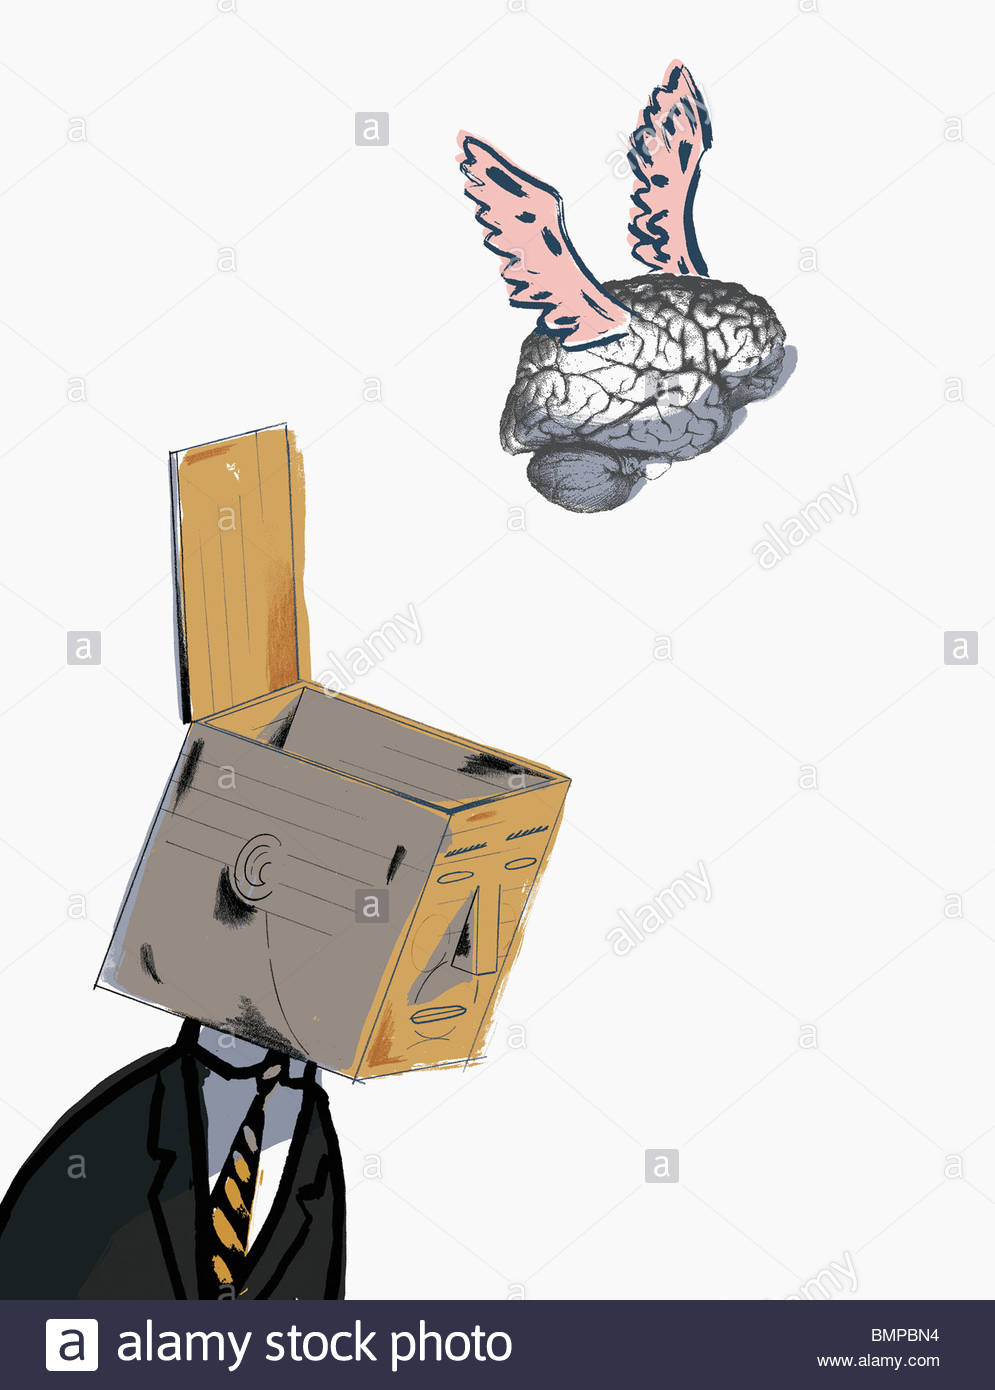 Brain flying from open box on businessman's head - Stock Image